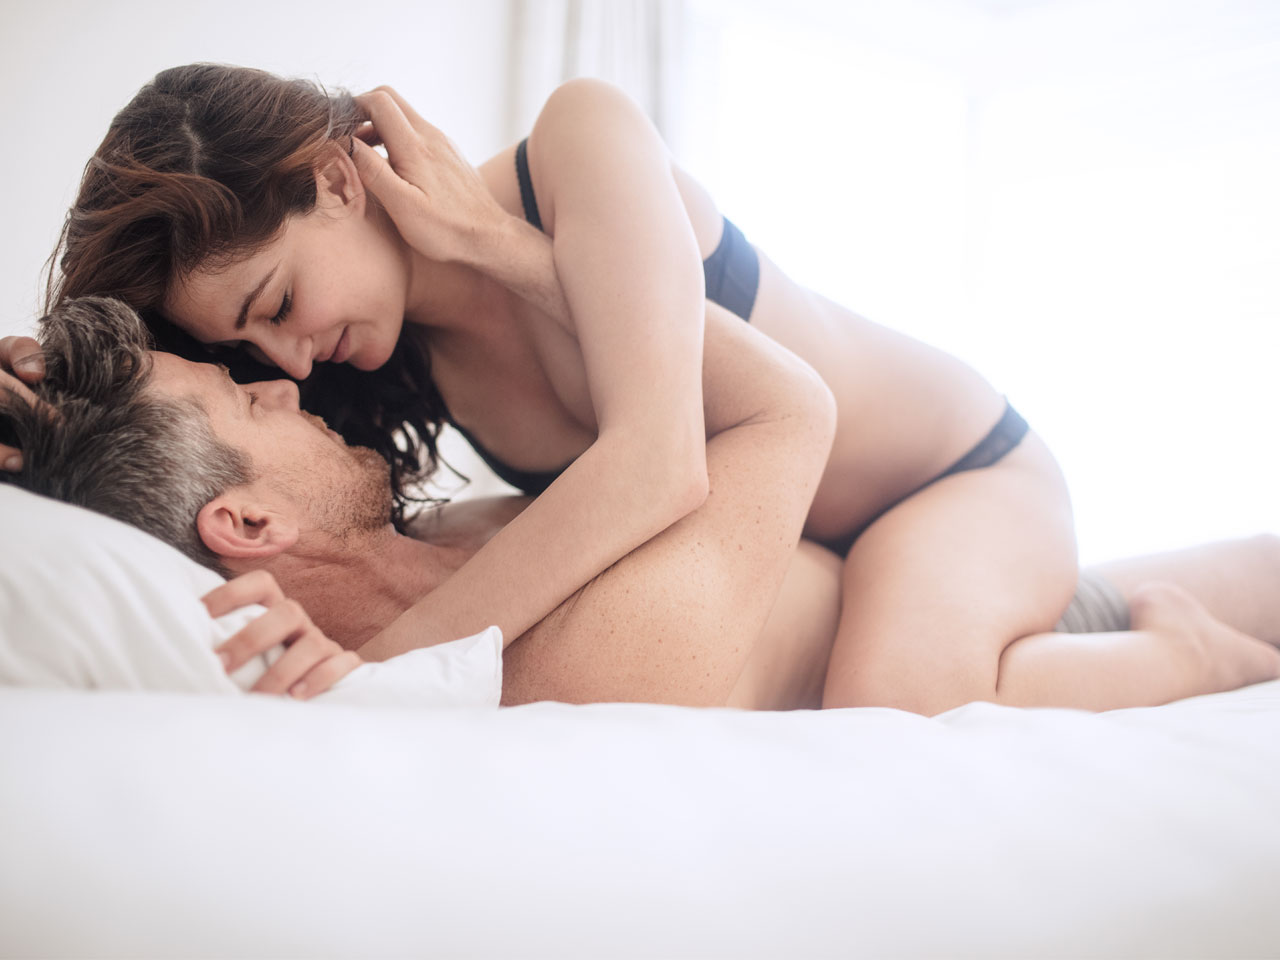 the best couples porn scenes for free